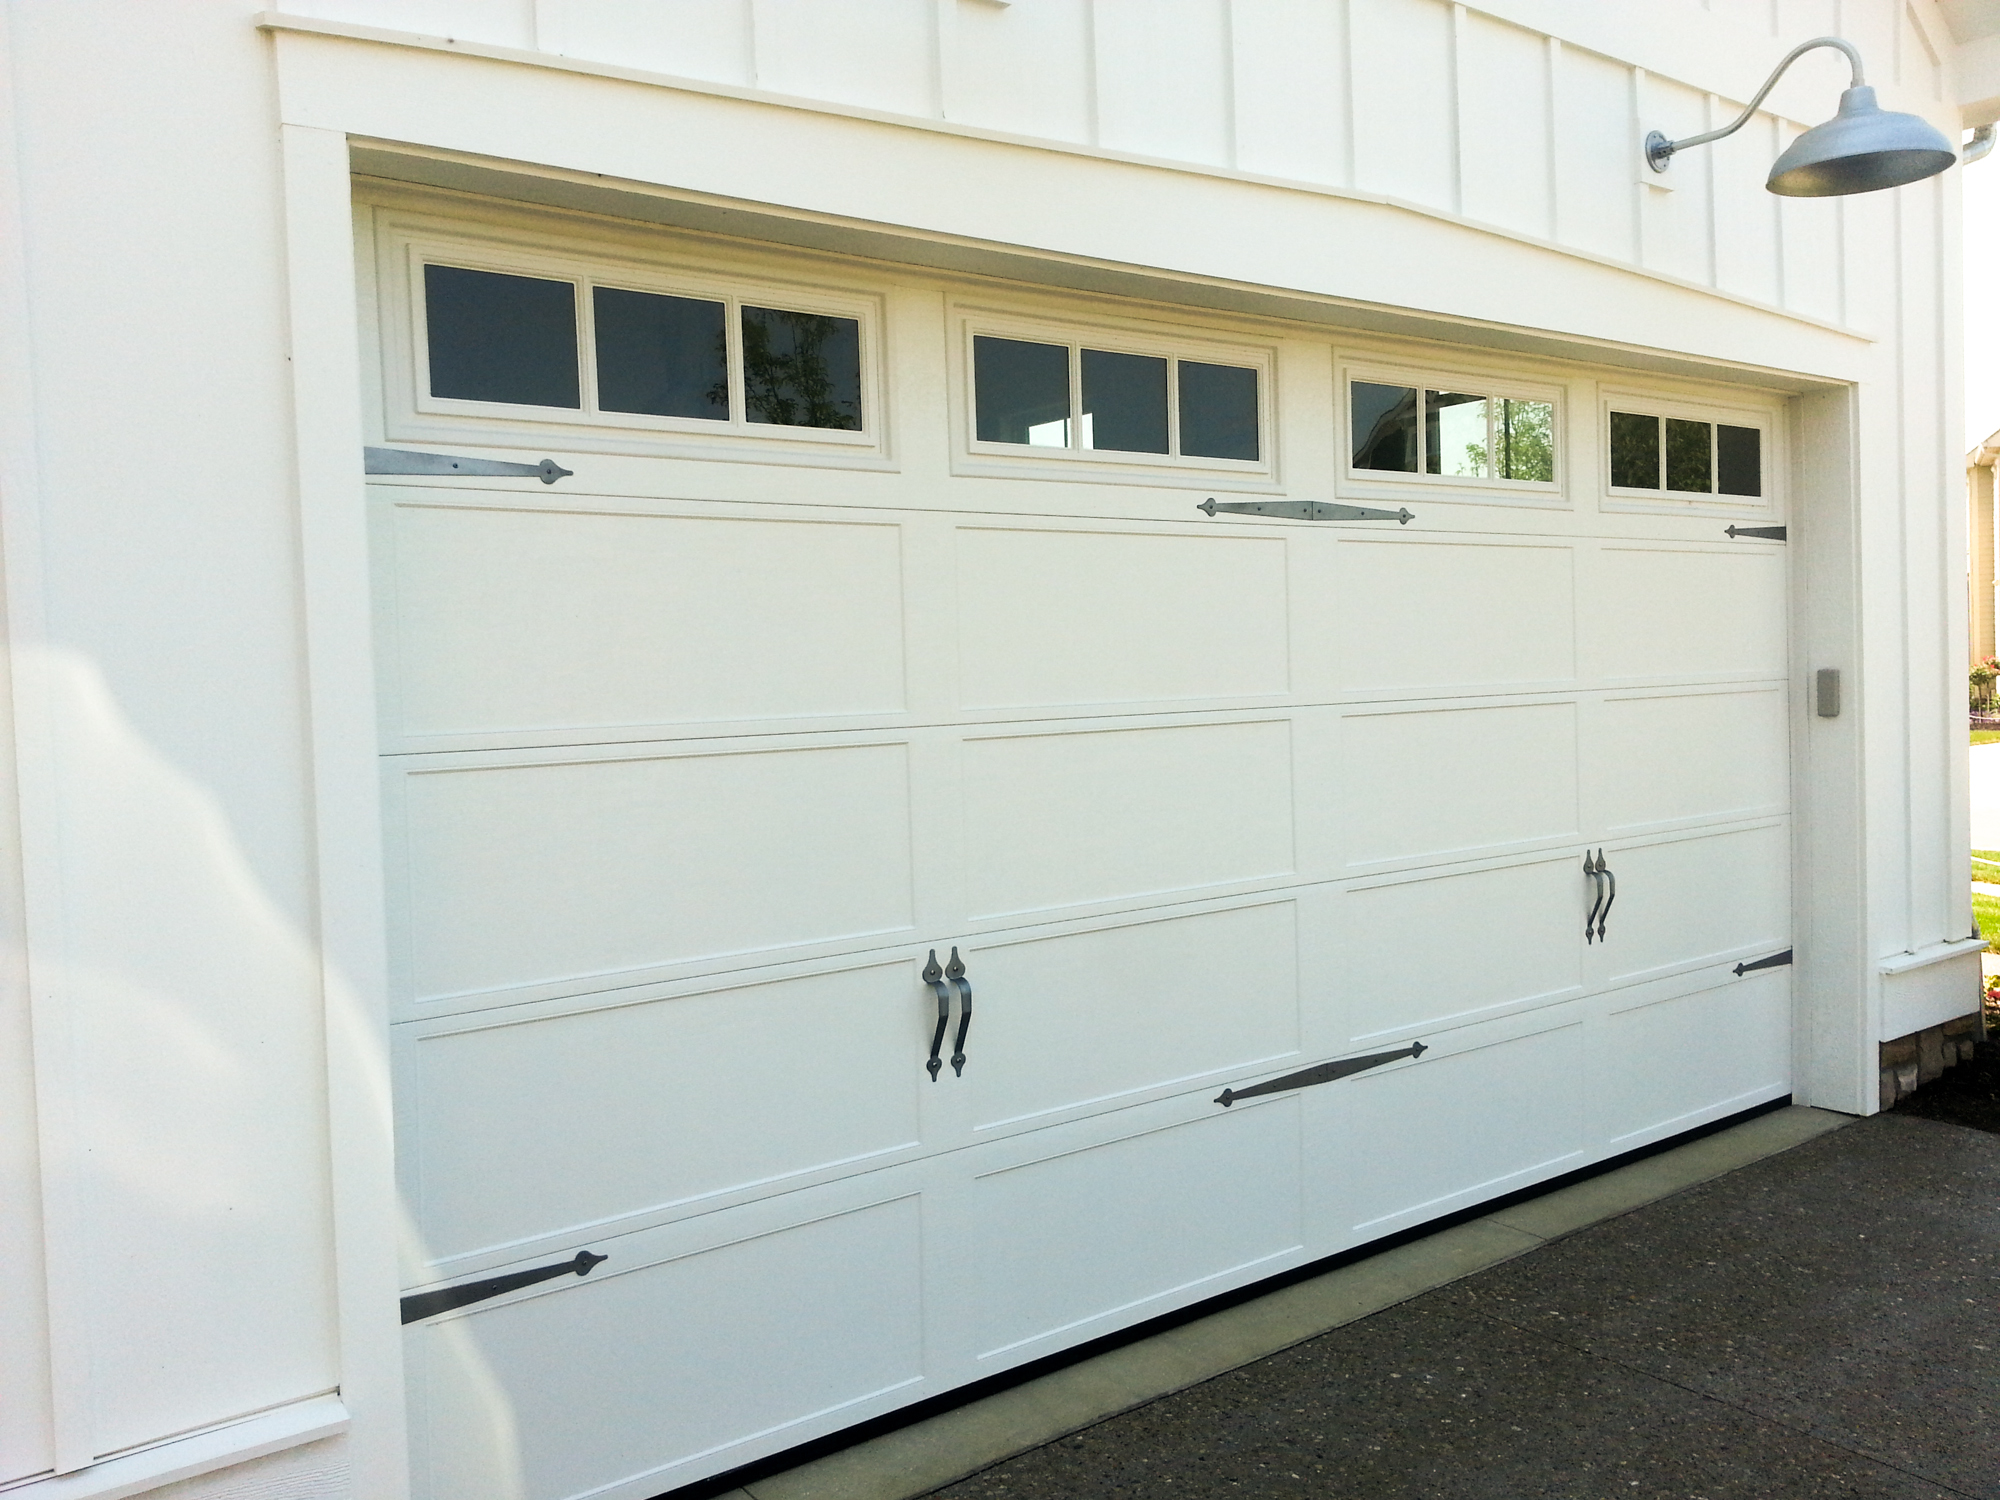 1500 #837448  Types Of Door Construction And Insulation Available On Select Doors pic Kinds Of Garage Doors 35812000